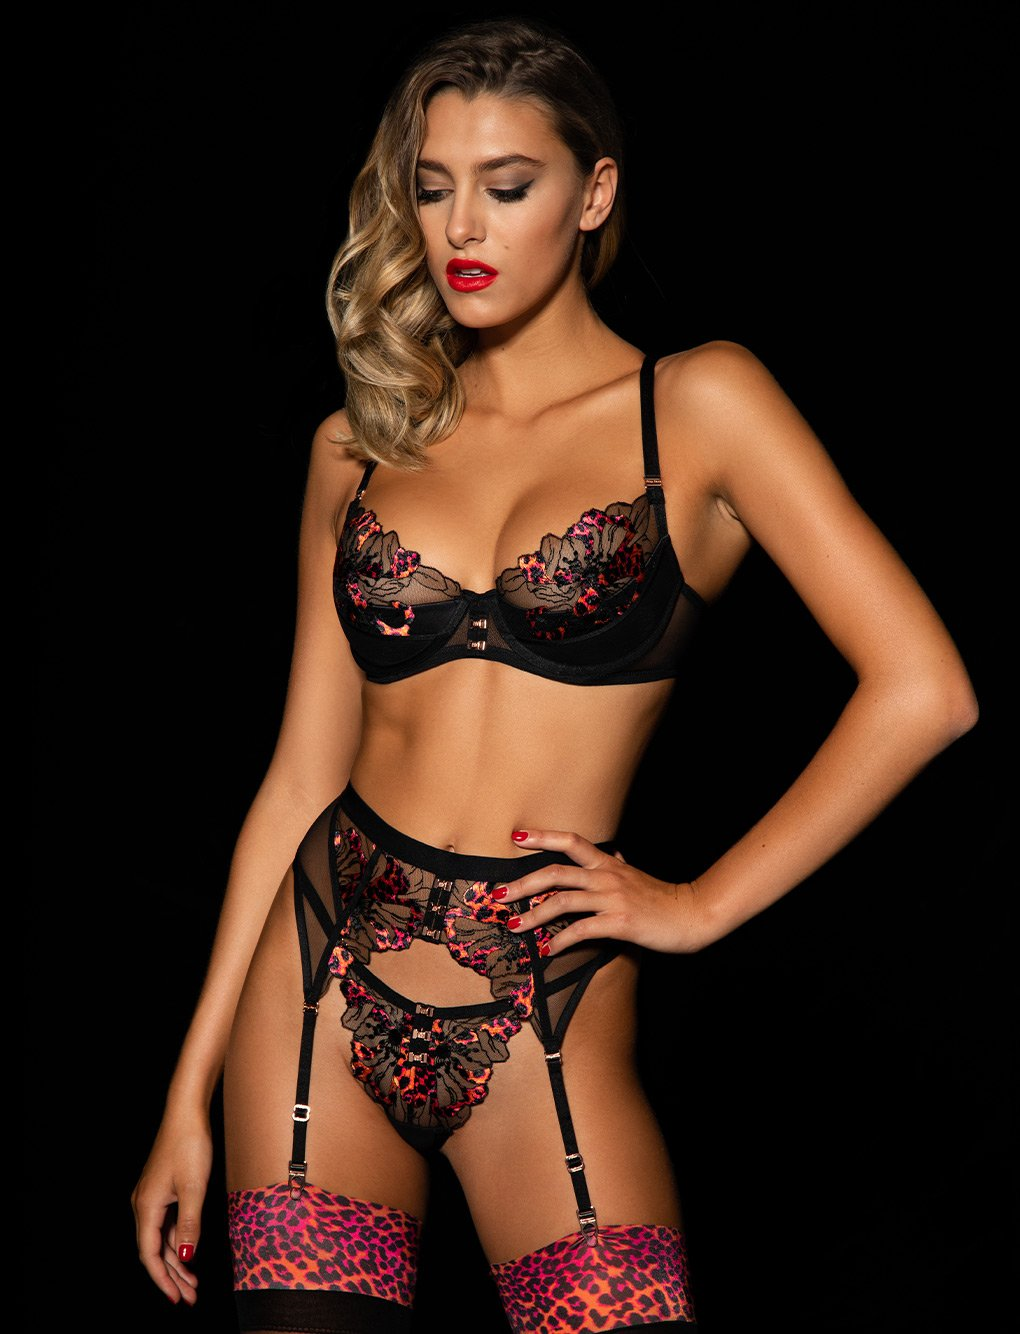 Darrien Bra 3 Piece Set